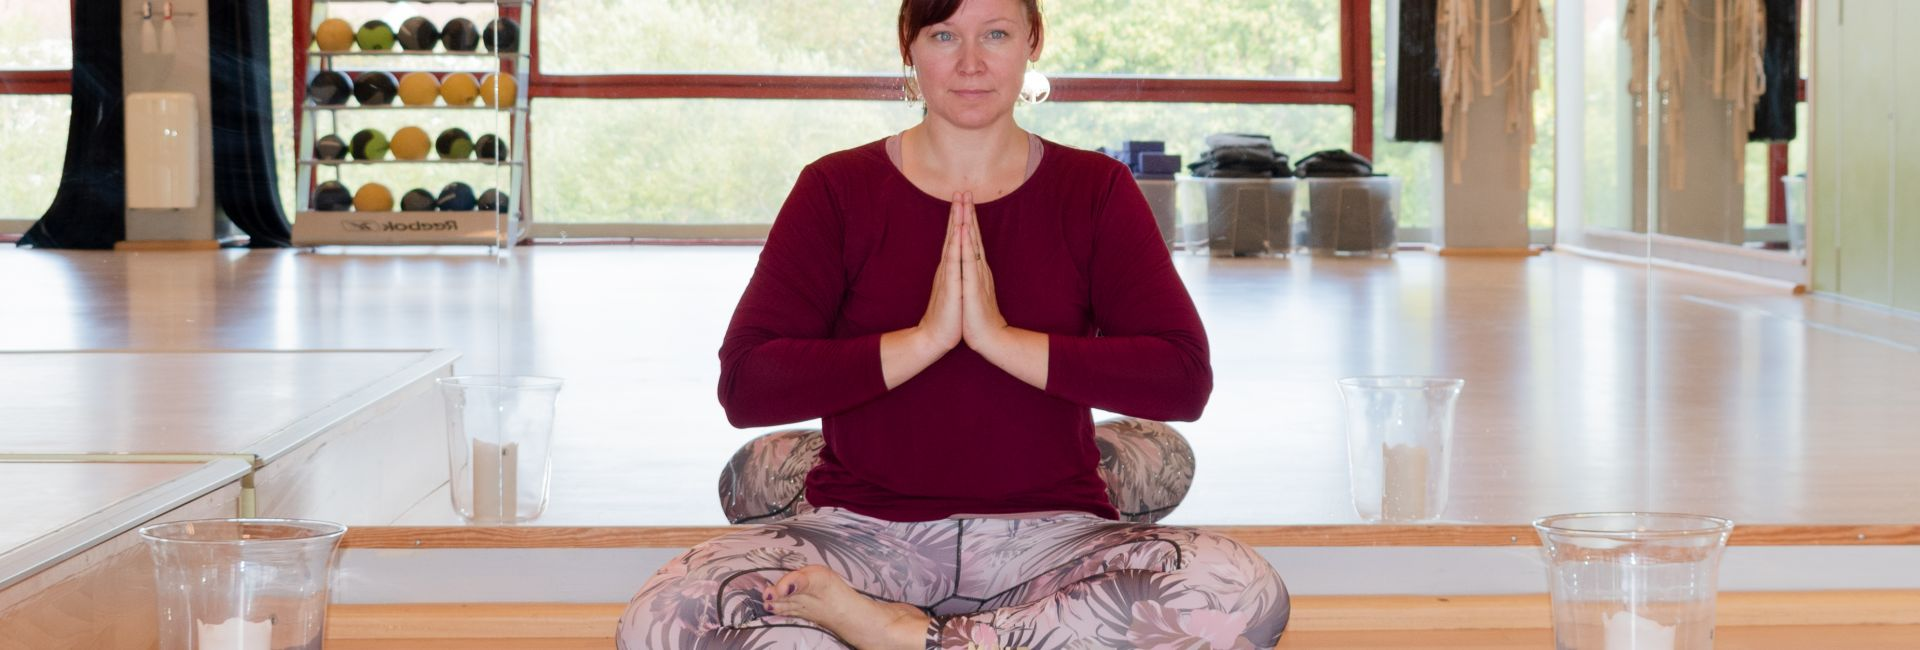 Global Flow Yoga, Kristinedals Träningscenter